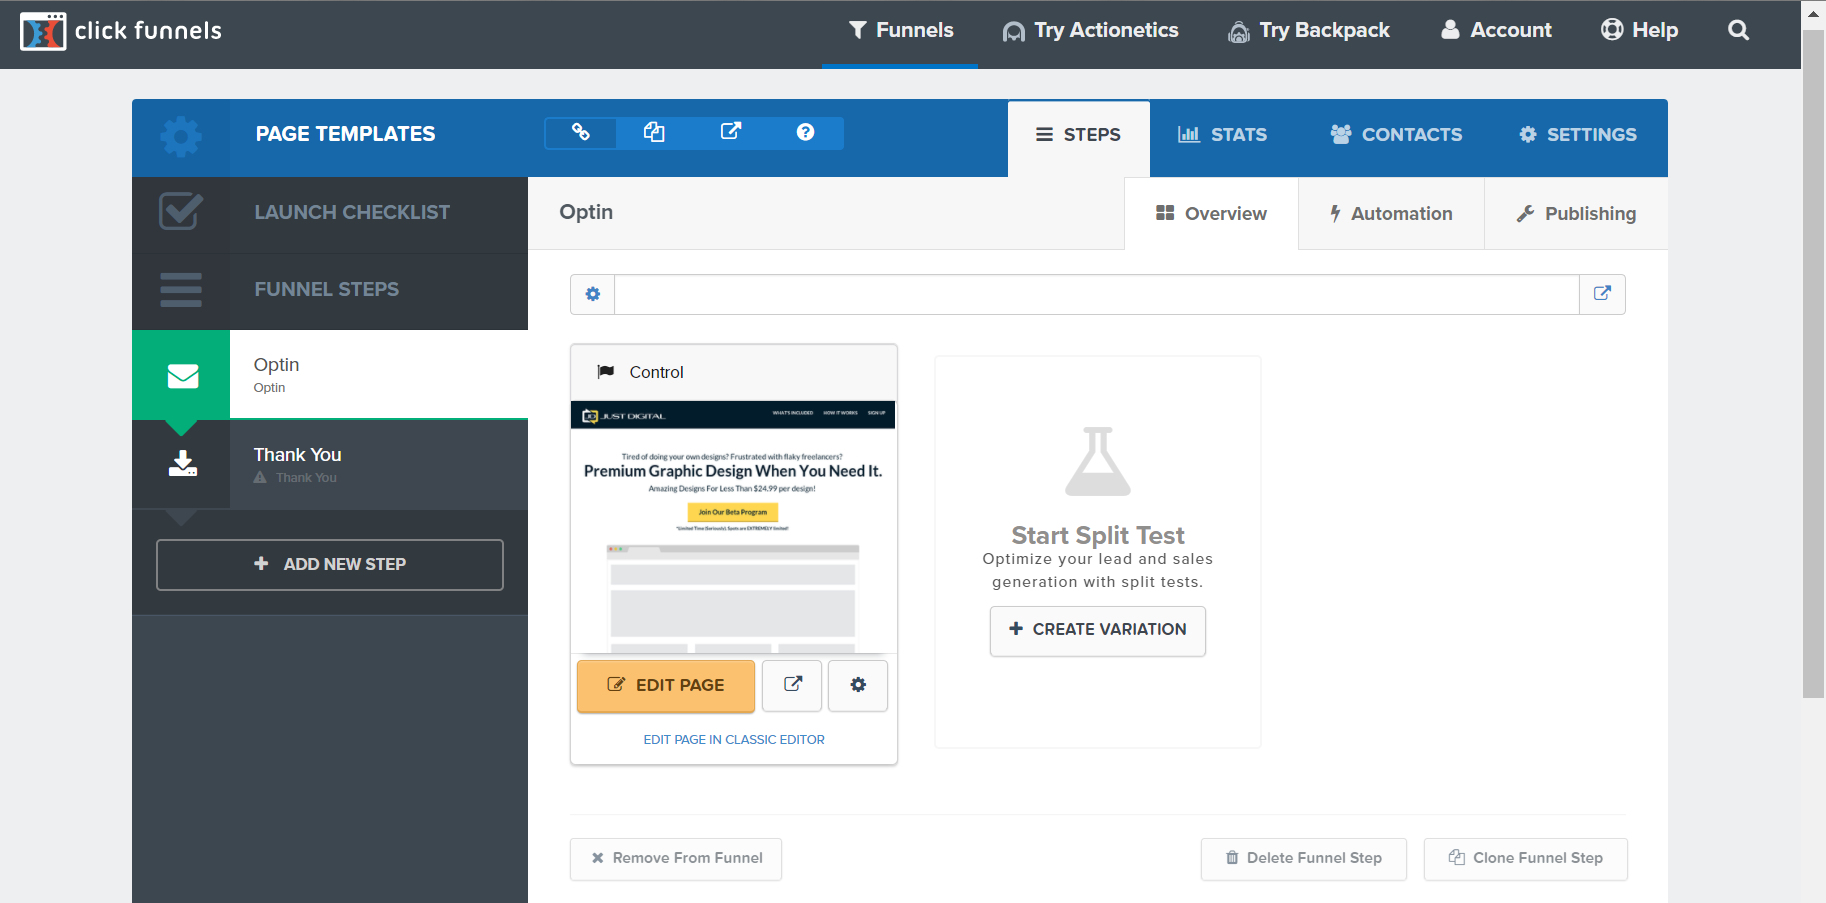 How To Add Product Variation In Clickfunnels